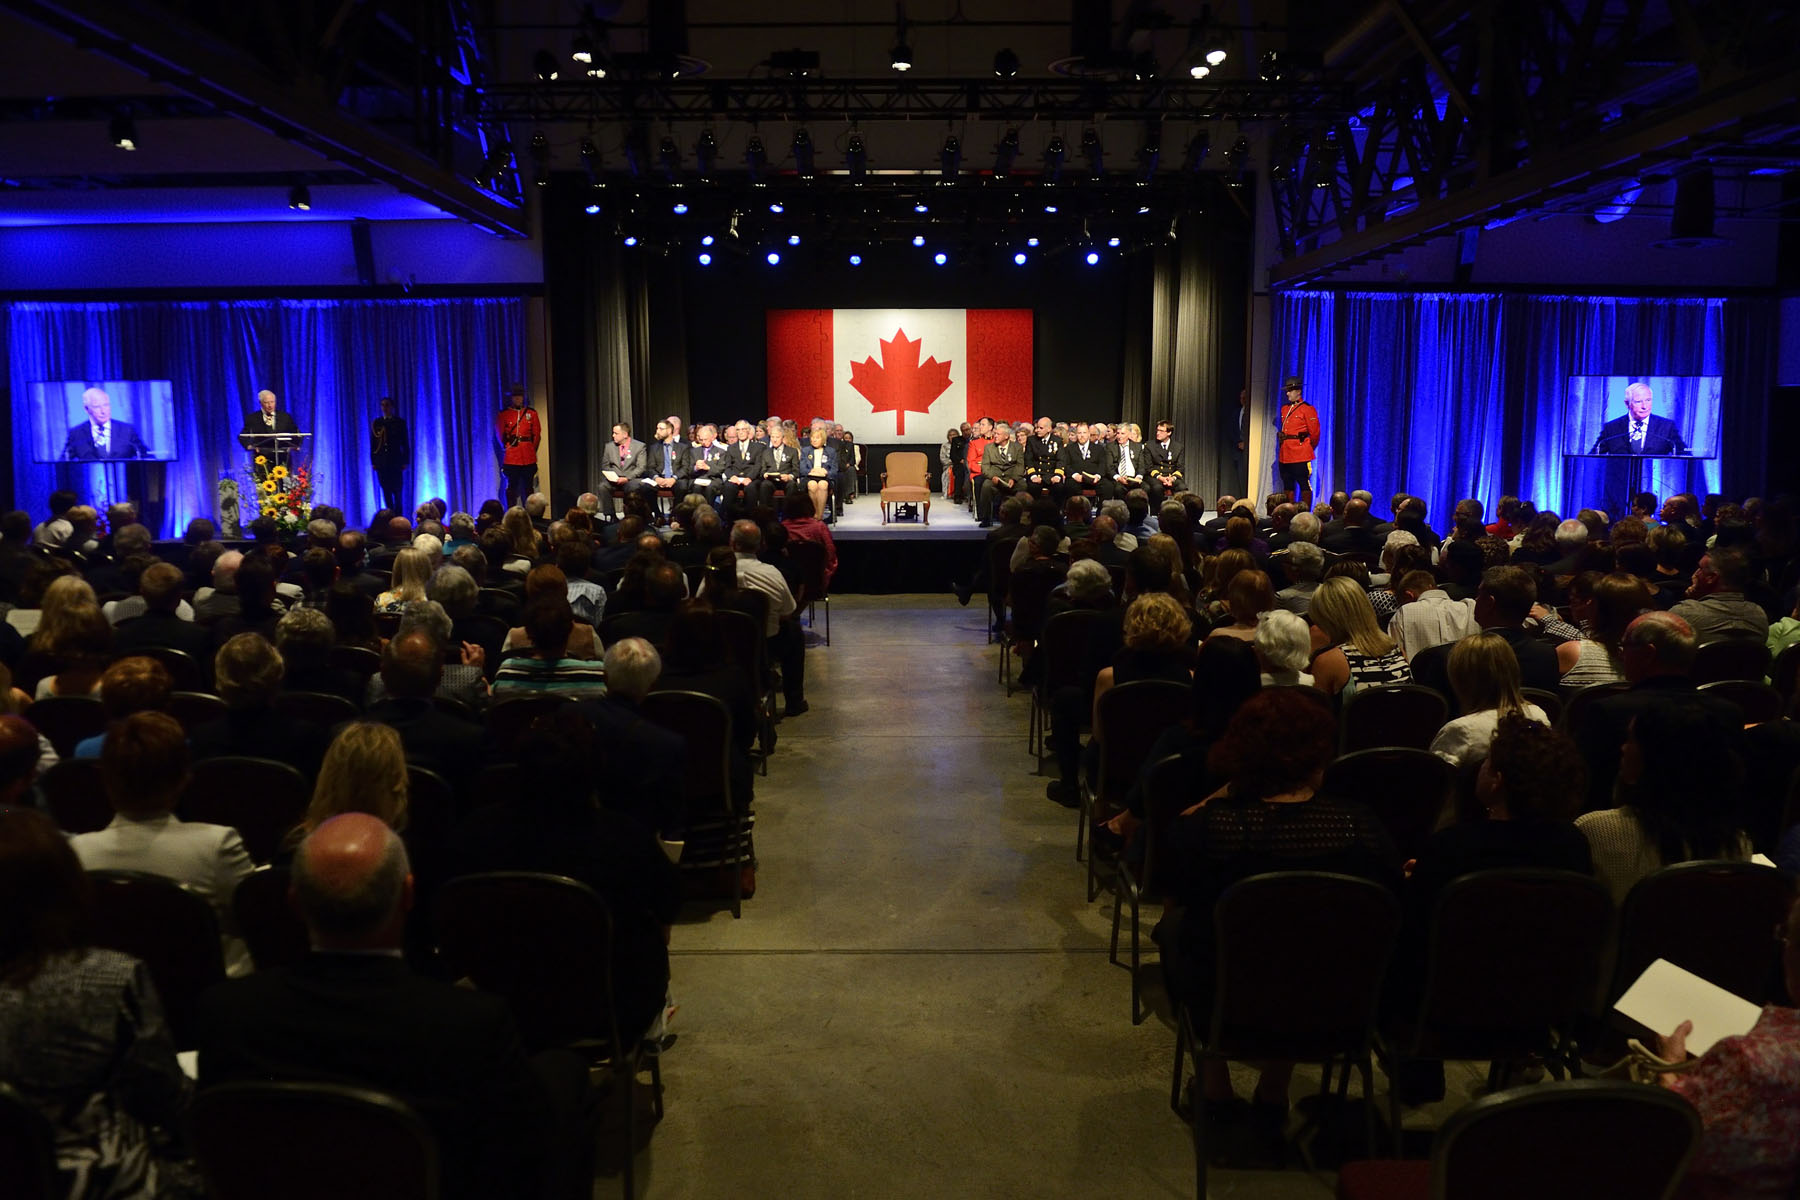 In the afternoon, the Governor General presented honours during a ceremony at the Canadian Museum of Immigration at Pier 21. More than 70 recipients from across the Atlantic provinces were recognized for their excellence, courage or exceptional dedication to service with one of the following honours: a Decoration for Bravery, a Meritorious Service Decoration or the Sovereign's Medal for Volunteers.